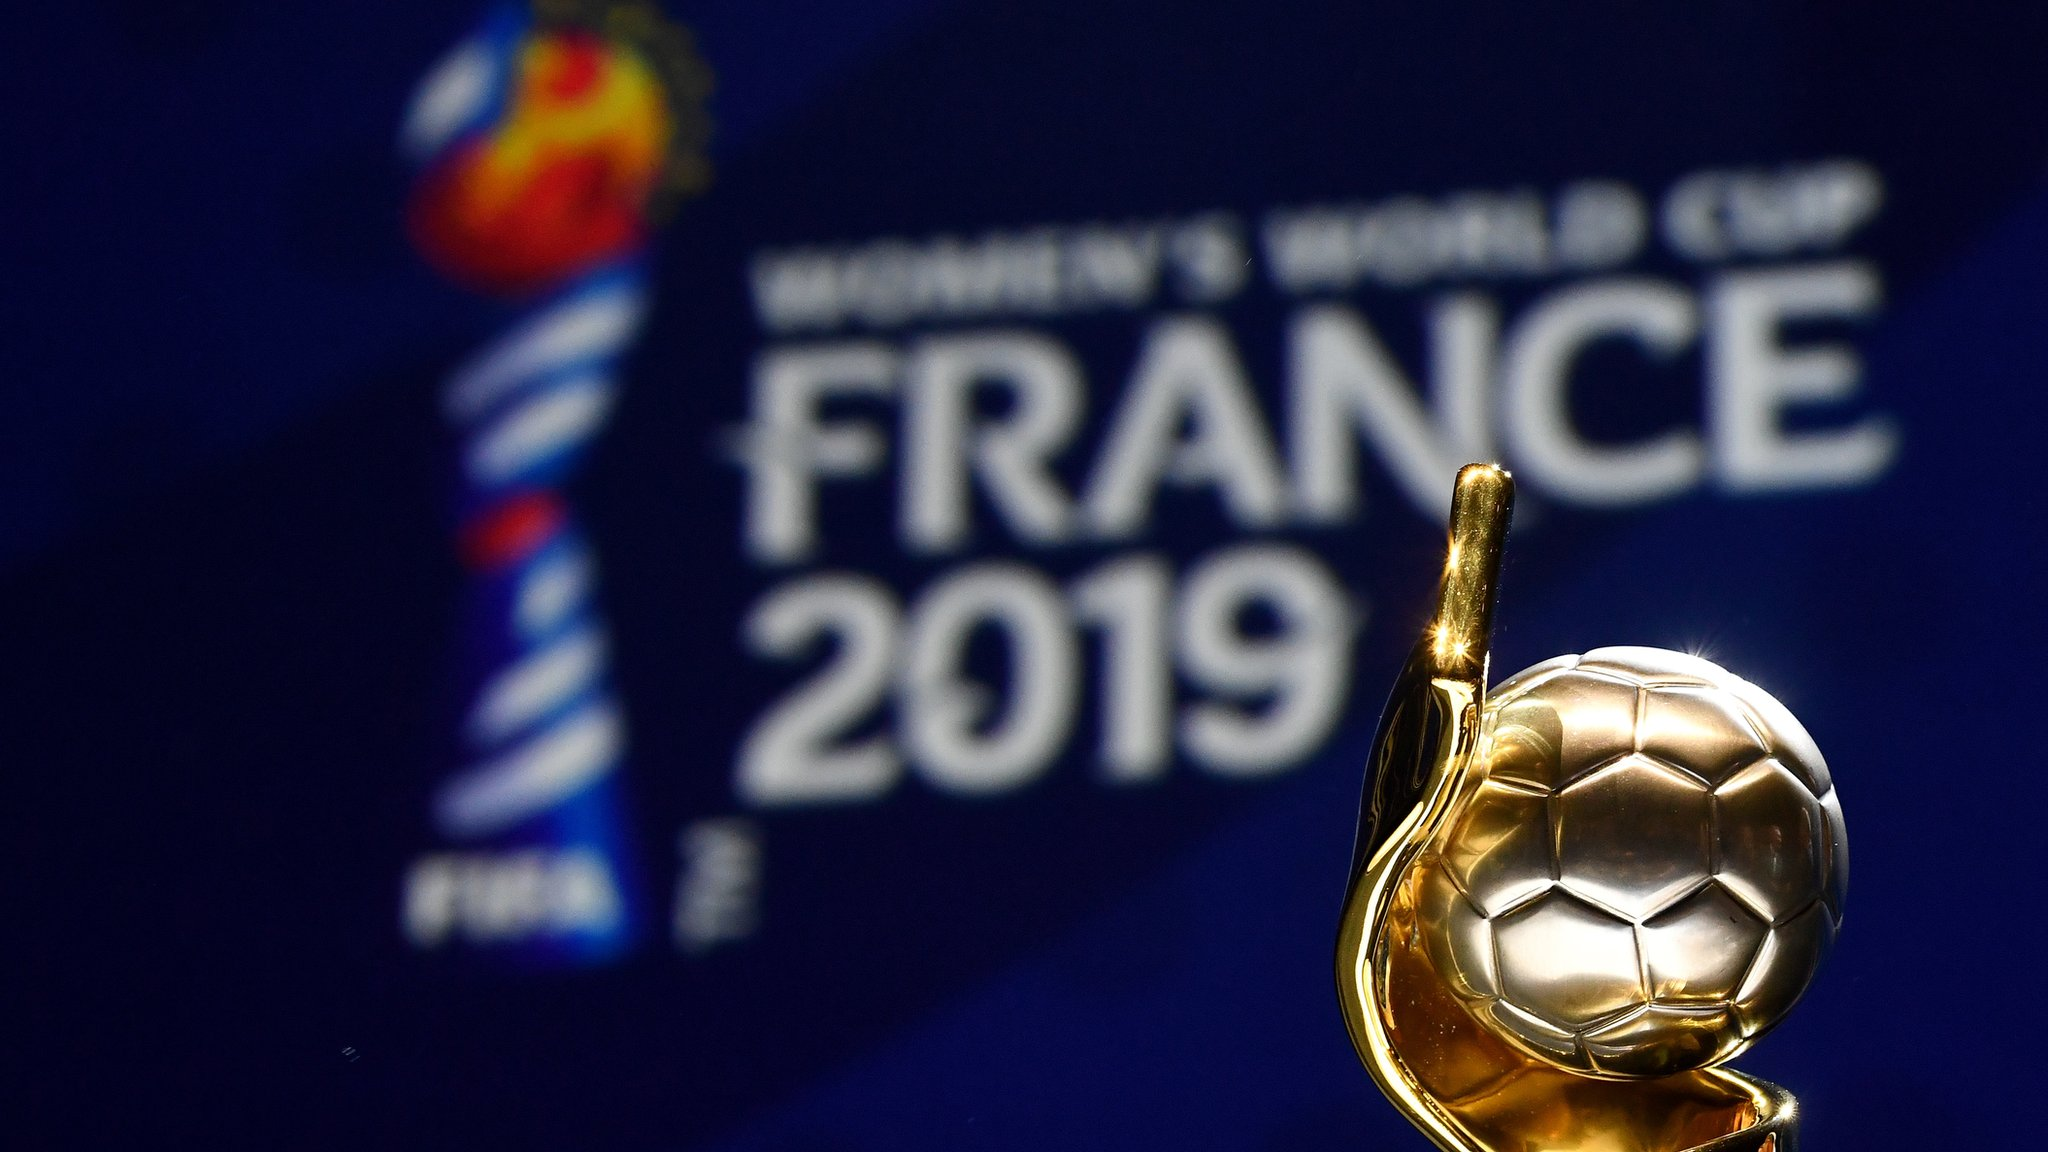 Women's World Cup: 'Families not allocated seats together'